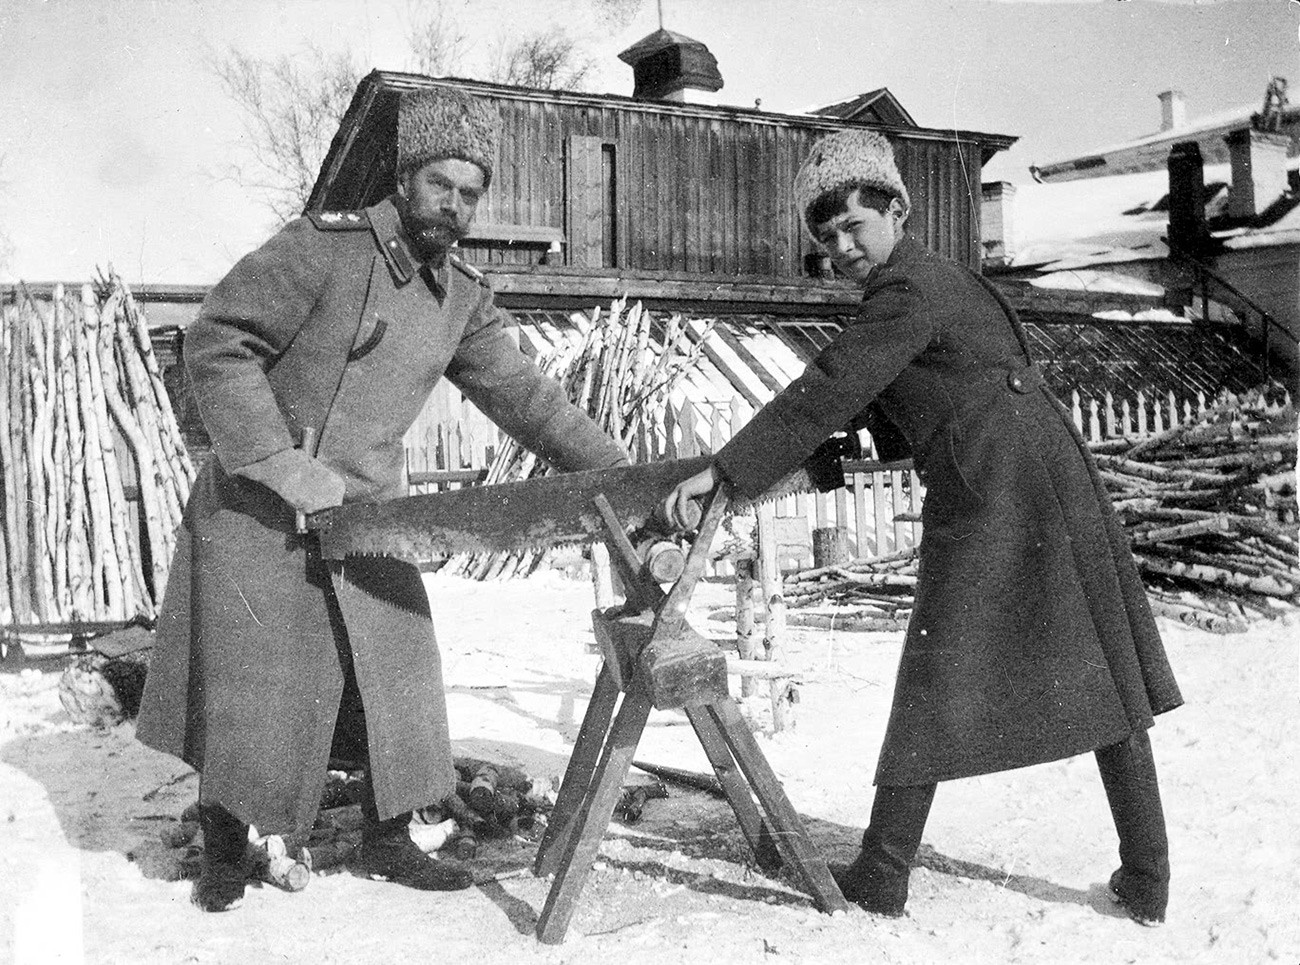 Tsarevich Alexei Nikolaevich and Tsar Nicholas II sawing wood at Tobolsk